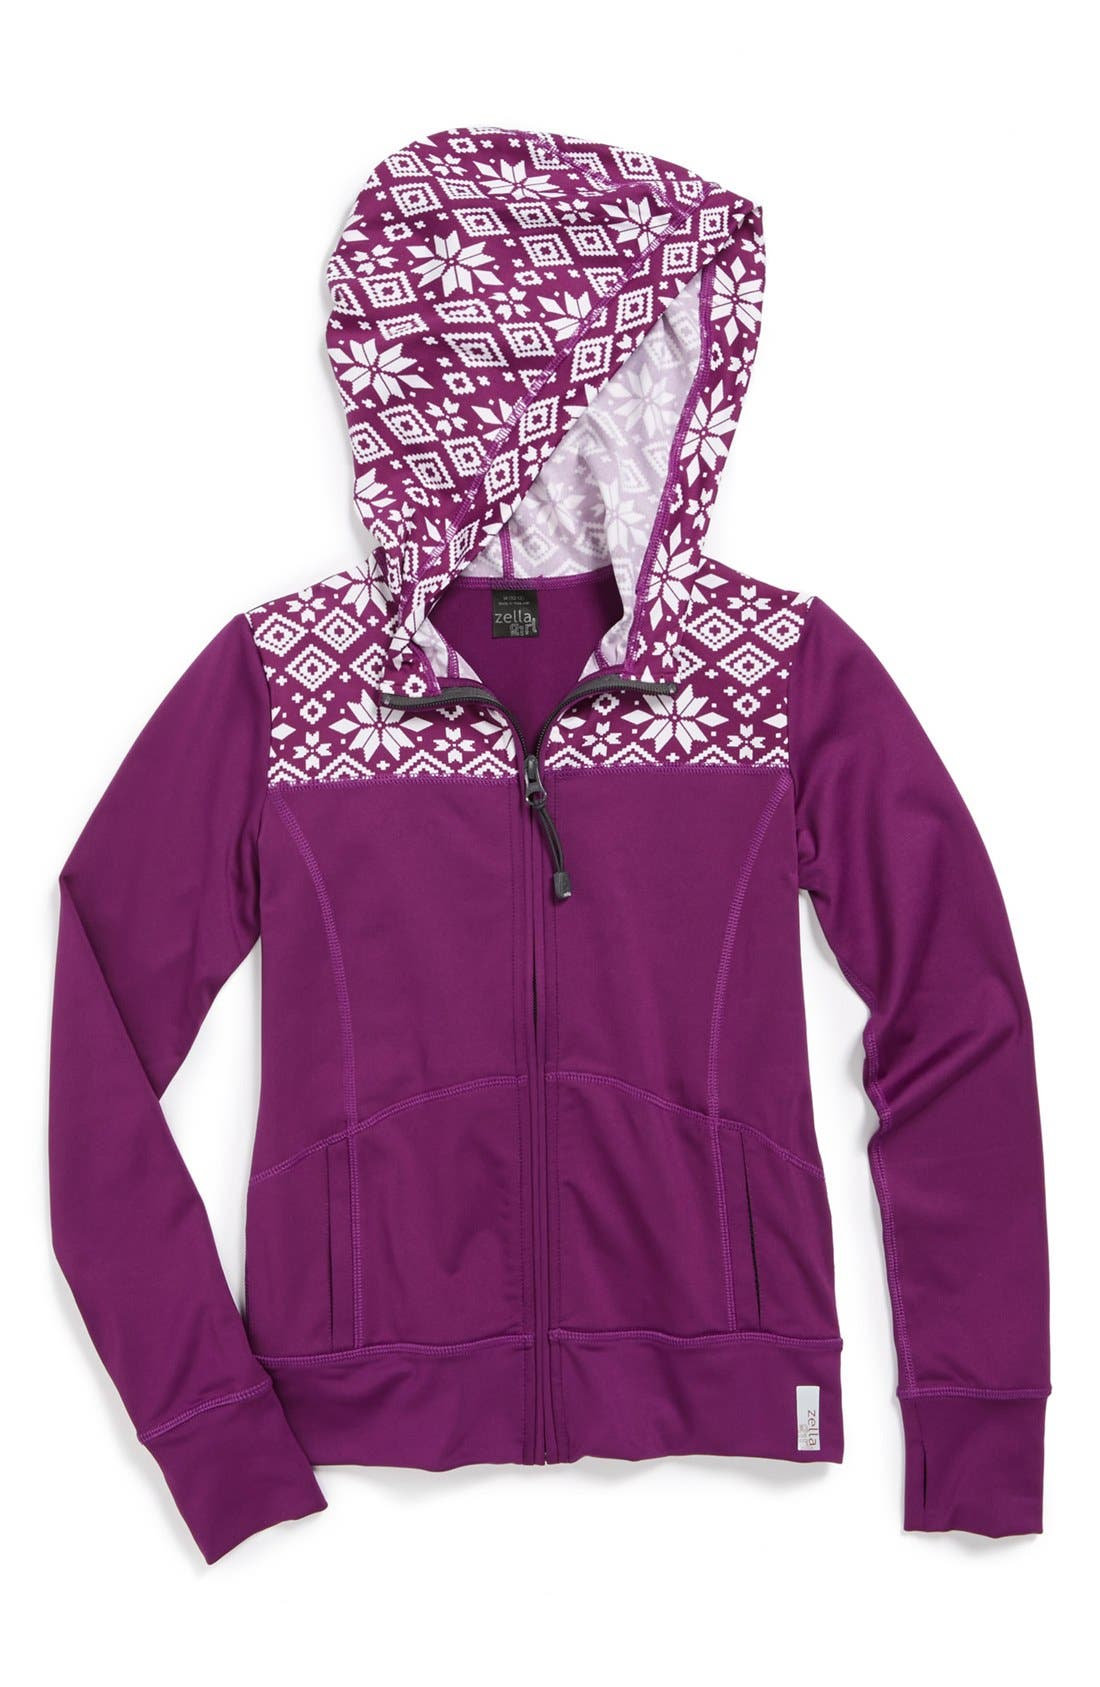 Alternate Image 1 Selected - Zella 'Routine' Print Hoodie (Little Girls & Big Girls)